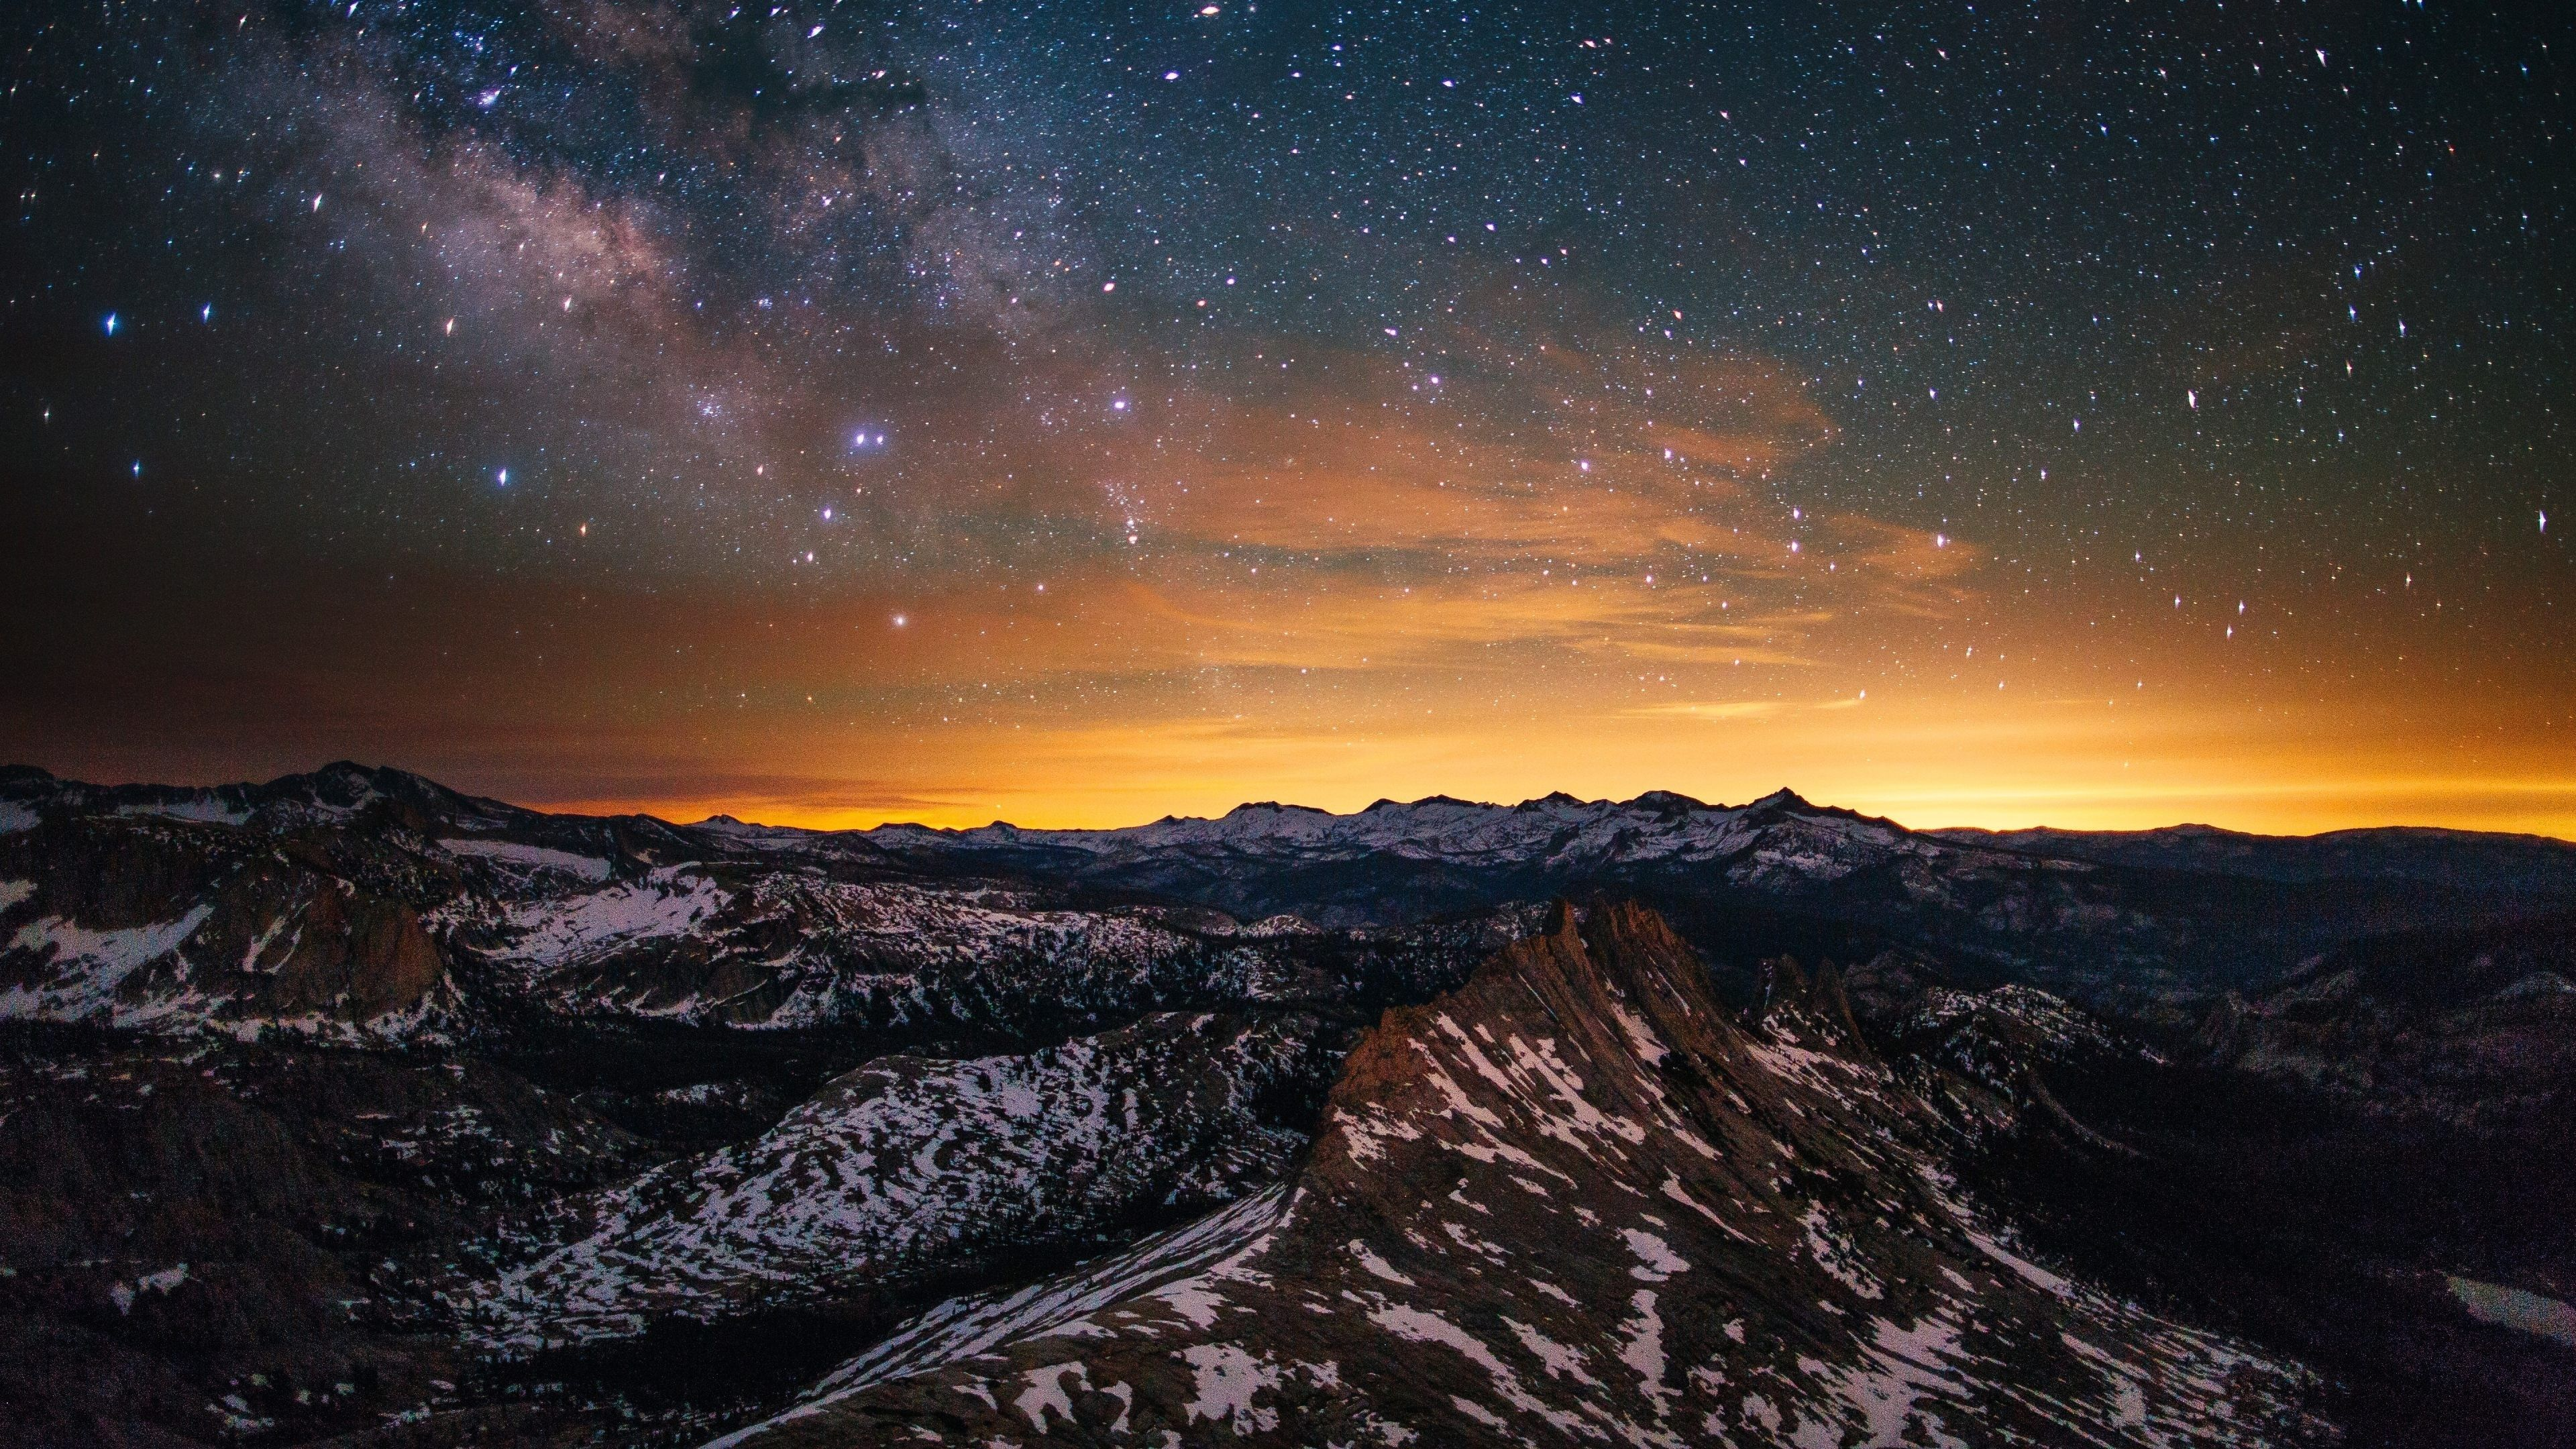 yosemite night scenery 4k ultra hd wallpaper ololoshenka